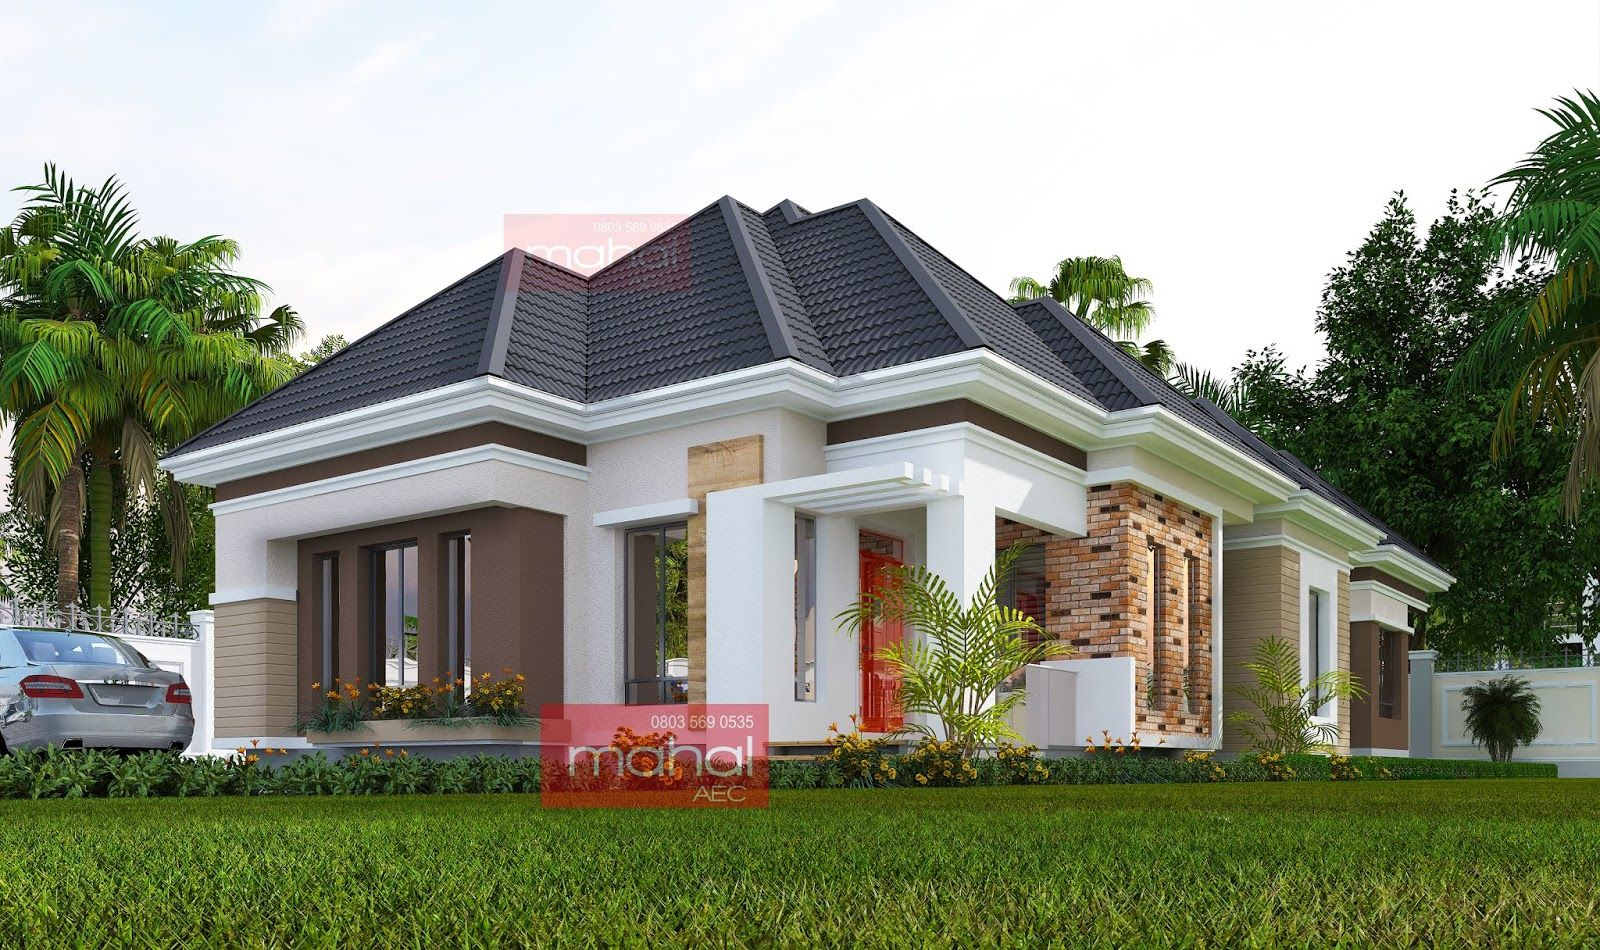 Contemporary Nigerian Residential Architecture Uwadiegwu House Modern 4 Bedroom Bungalow In 2020 Bungalow House Design Residential Architecture House Paint Exterior